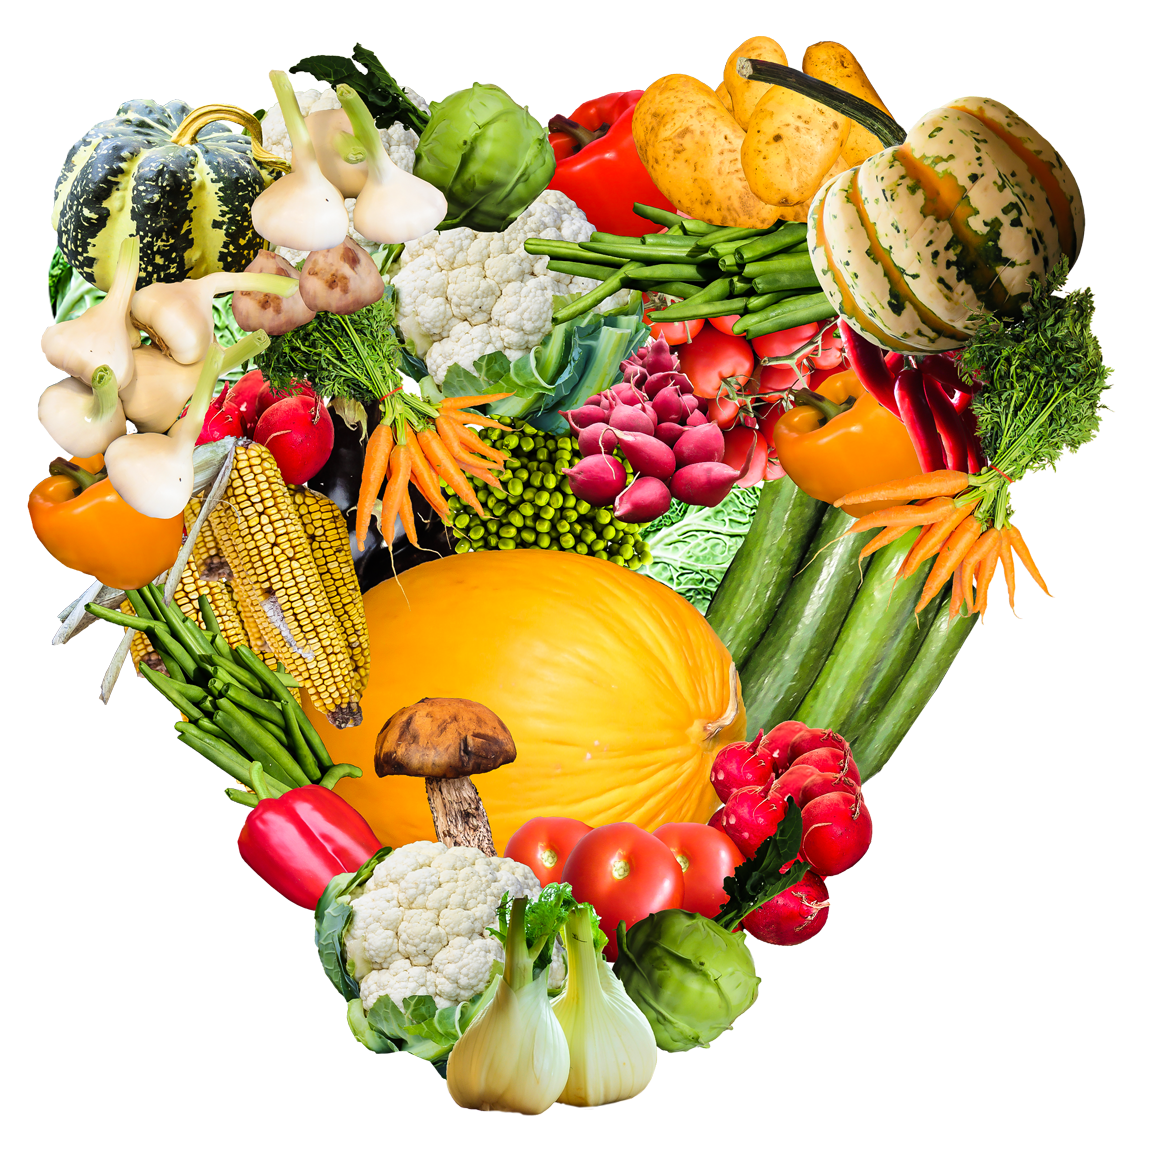 Png image purepng free. Vegetables clipart heart